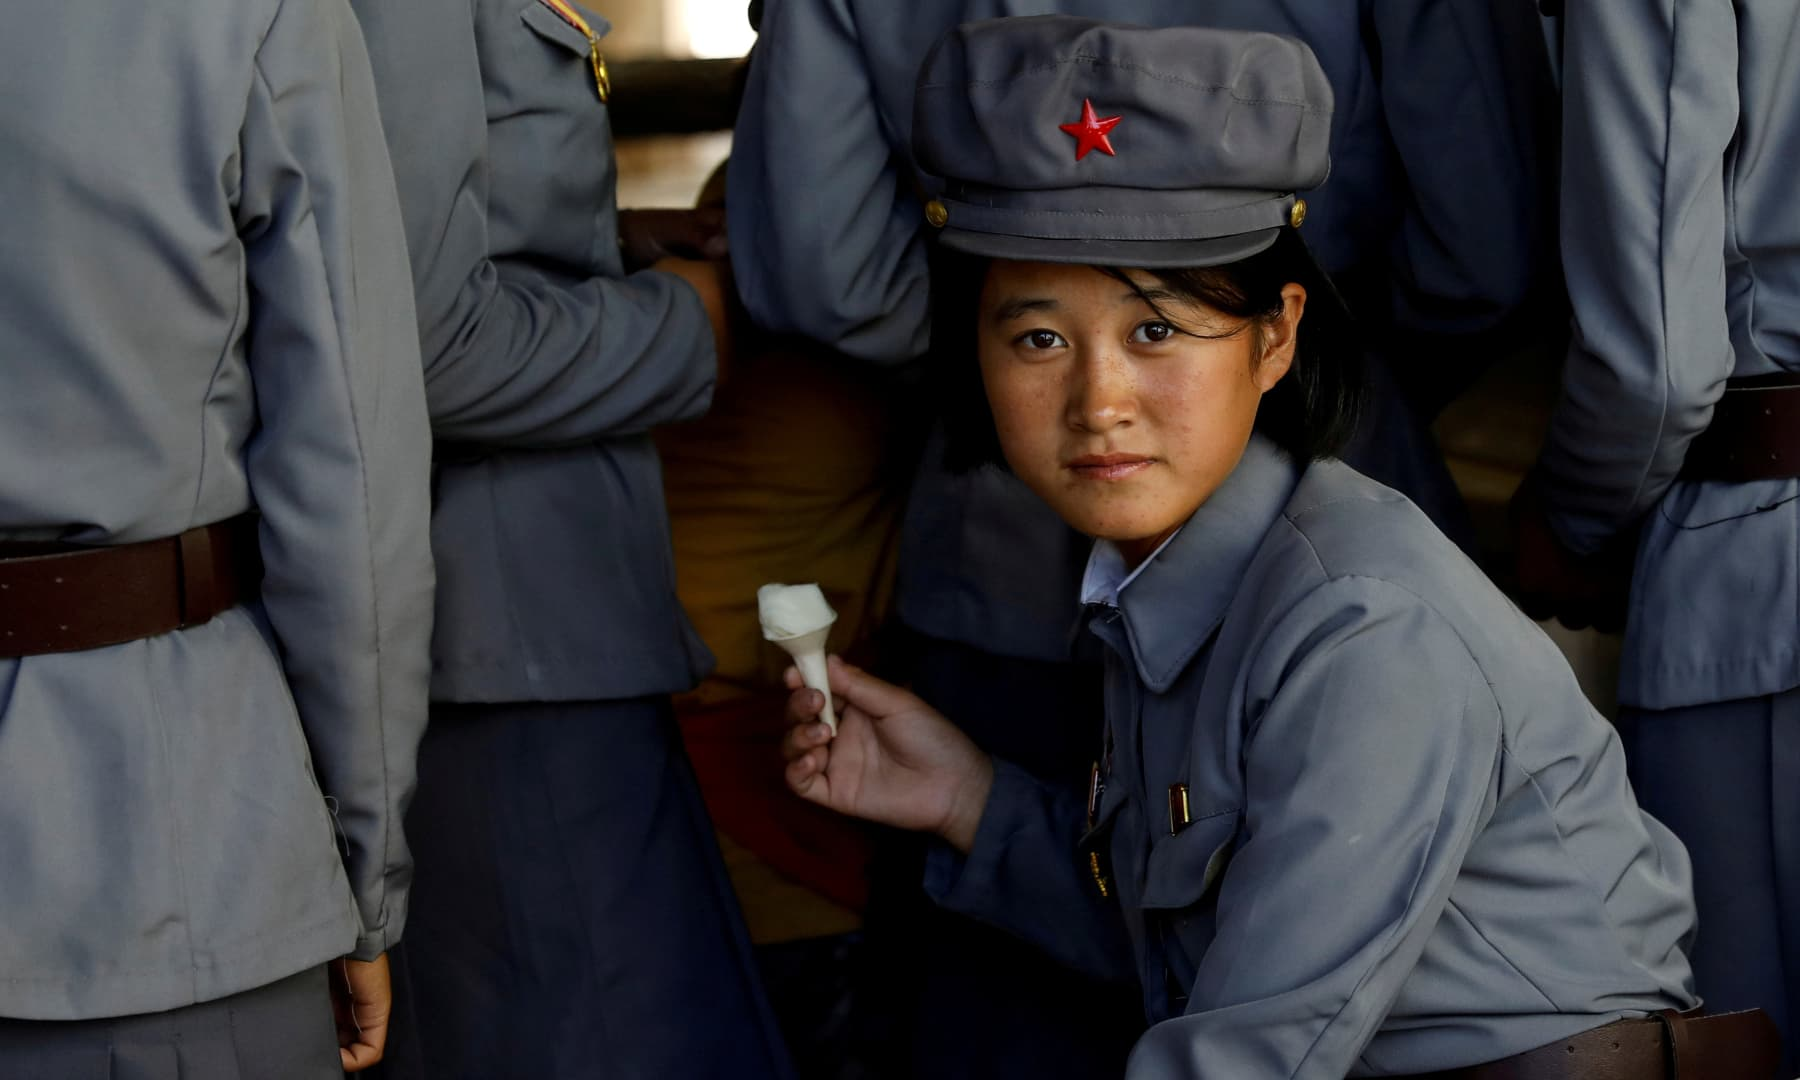 A soldier eats ice cream as she visits a zoo in Pyongyang, North Korea, September 12, 2018. — Reuters/Danish Siddiqui